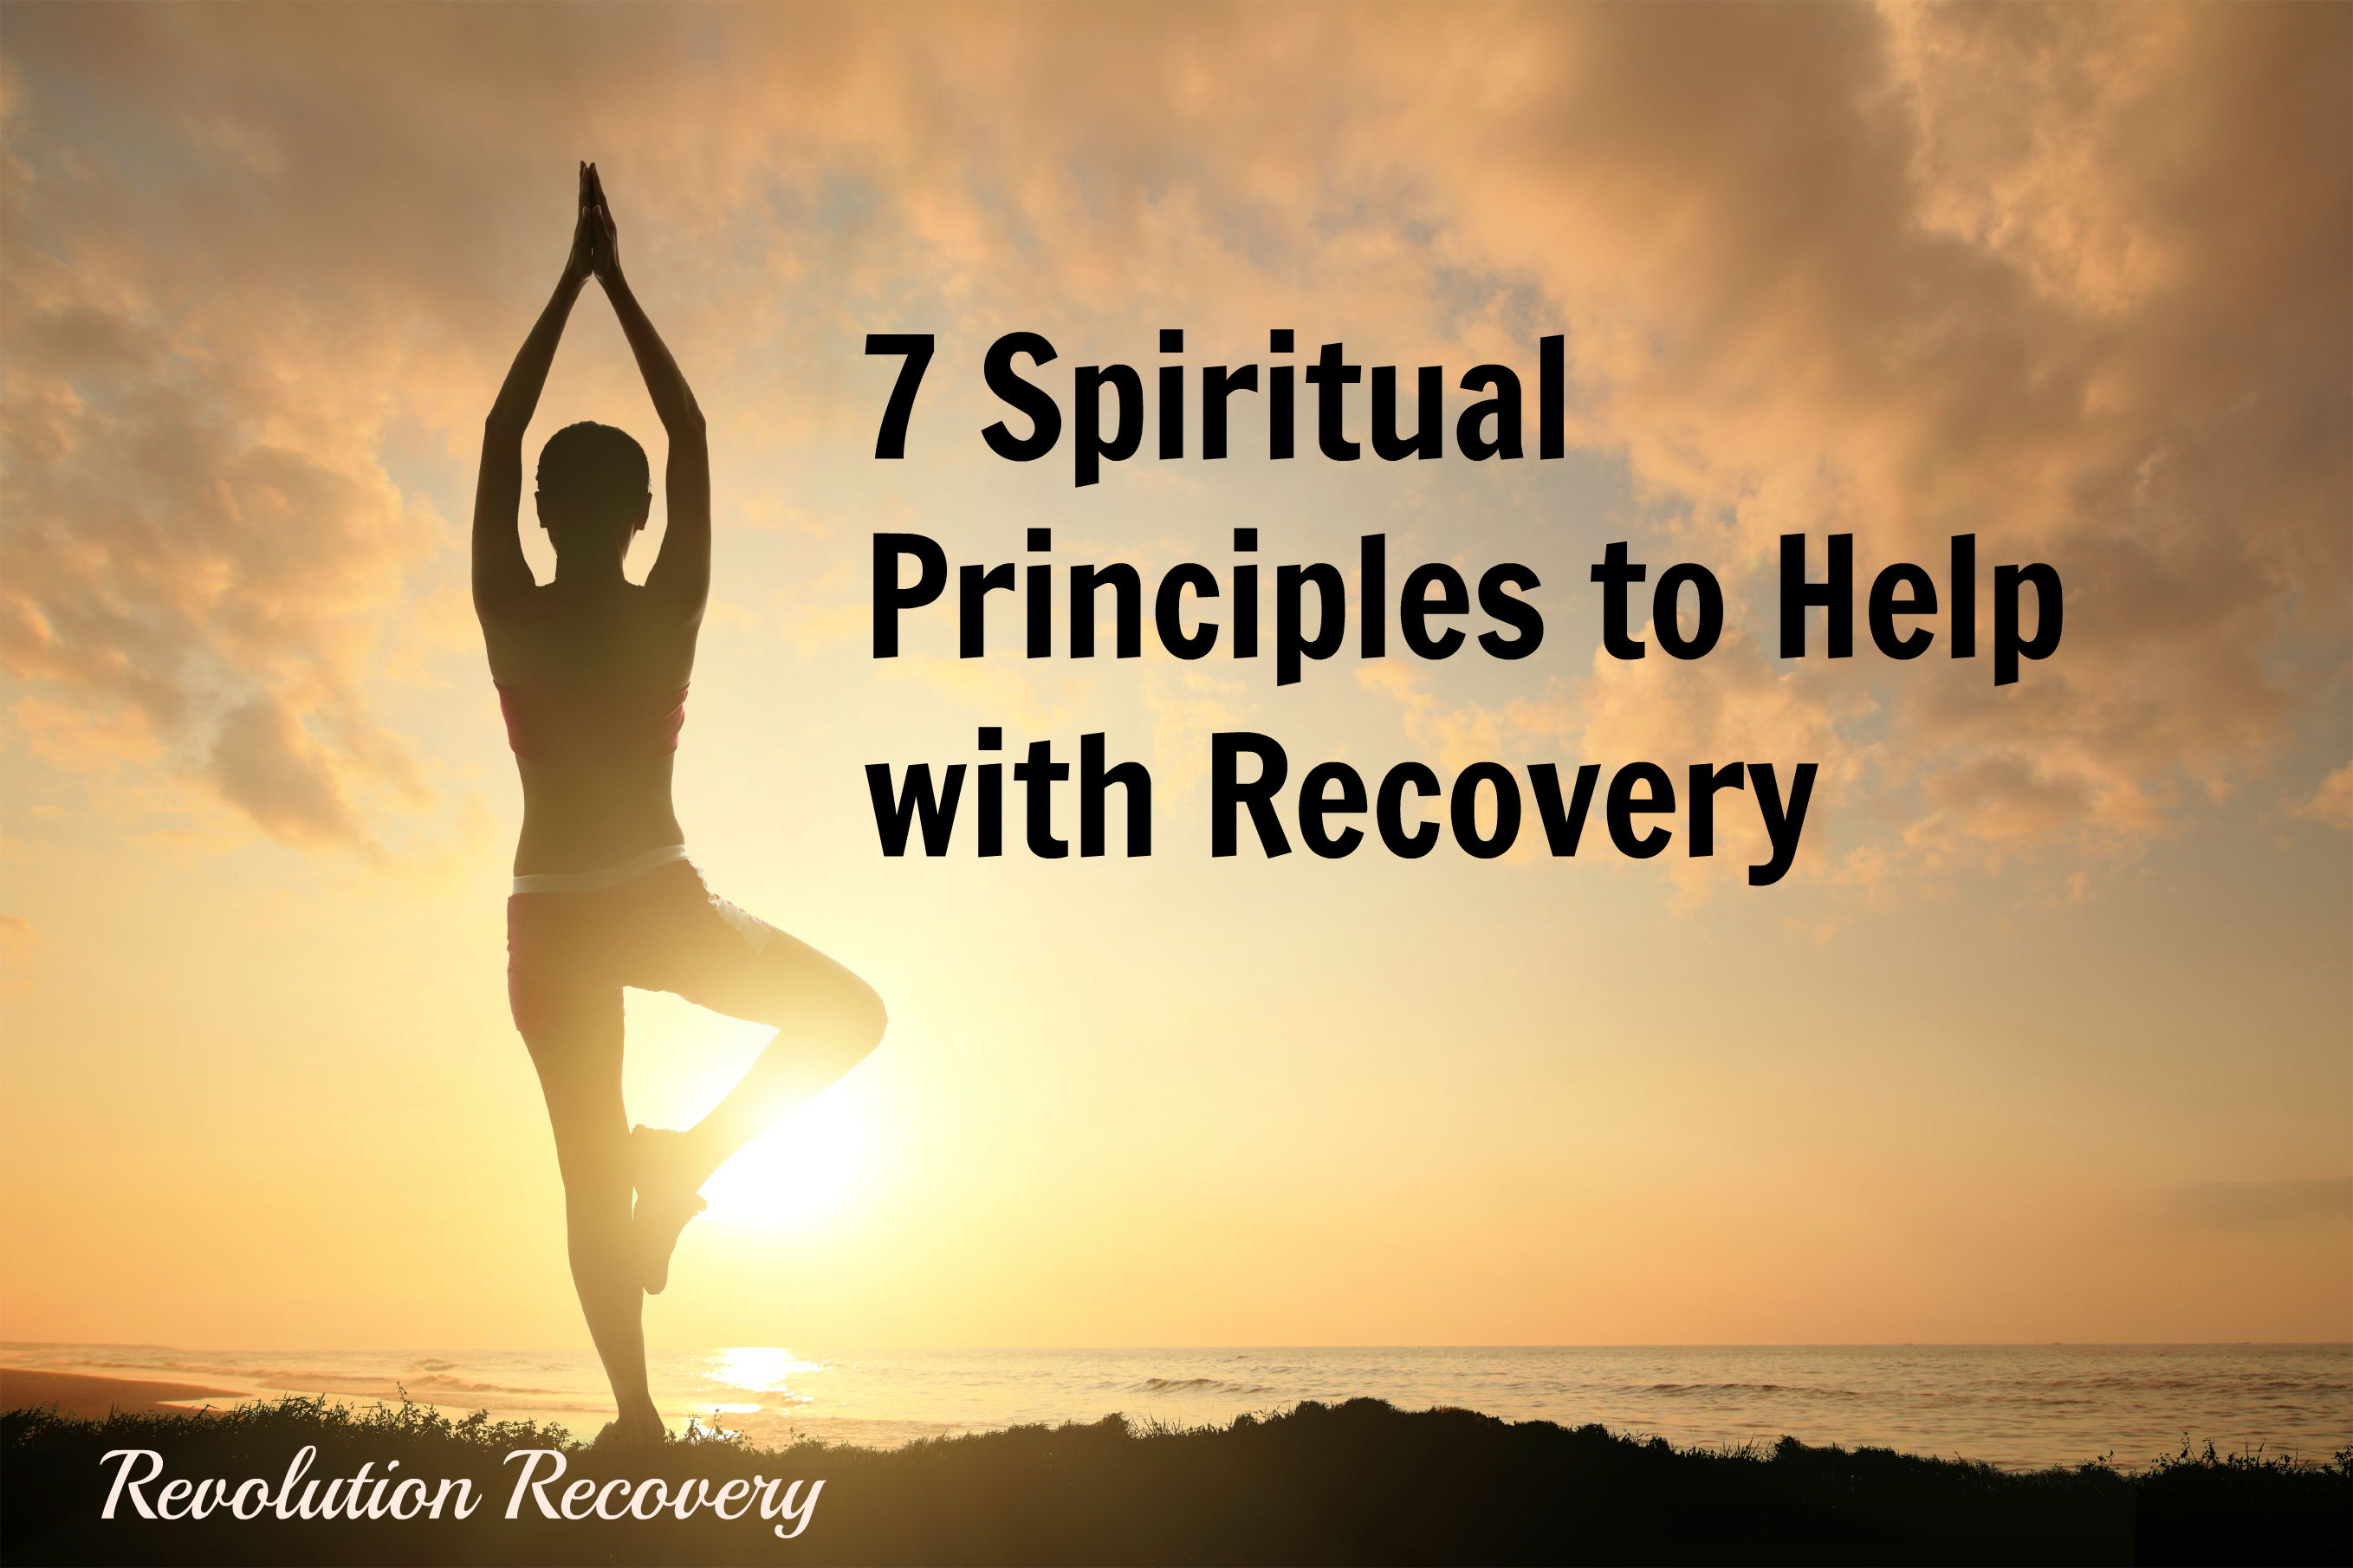 7 Spiritual Principles to Help In Recovery